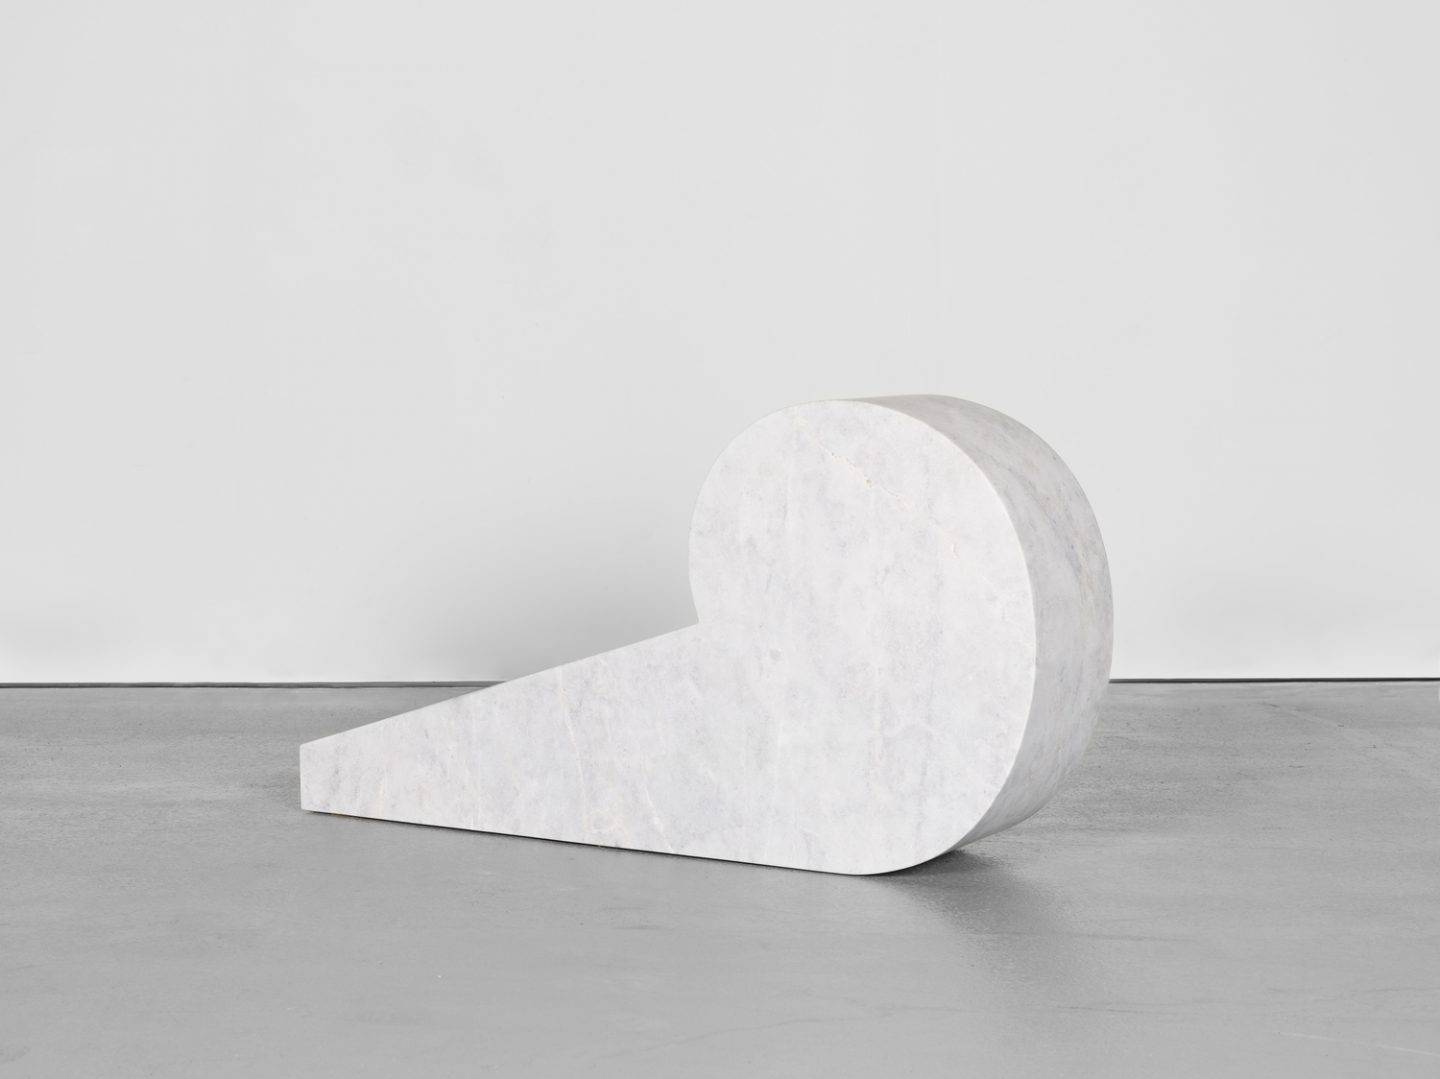 sculpture by Pedro Reyes